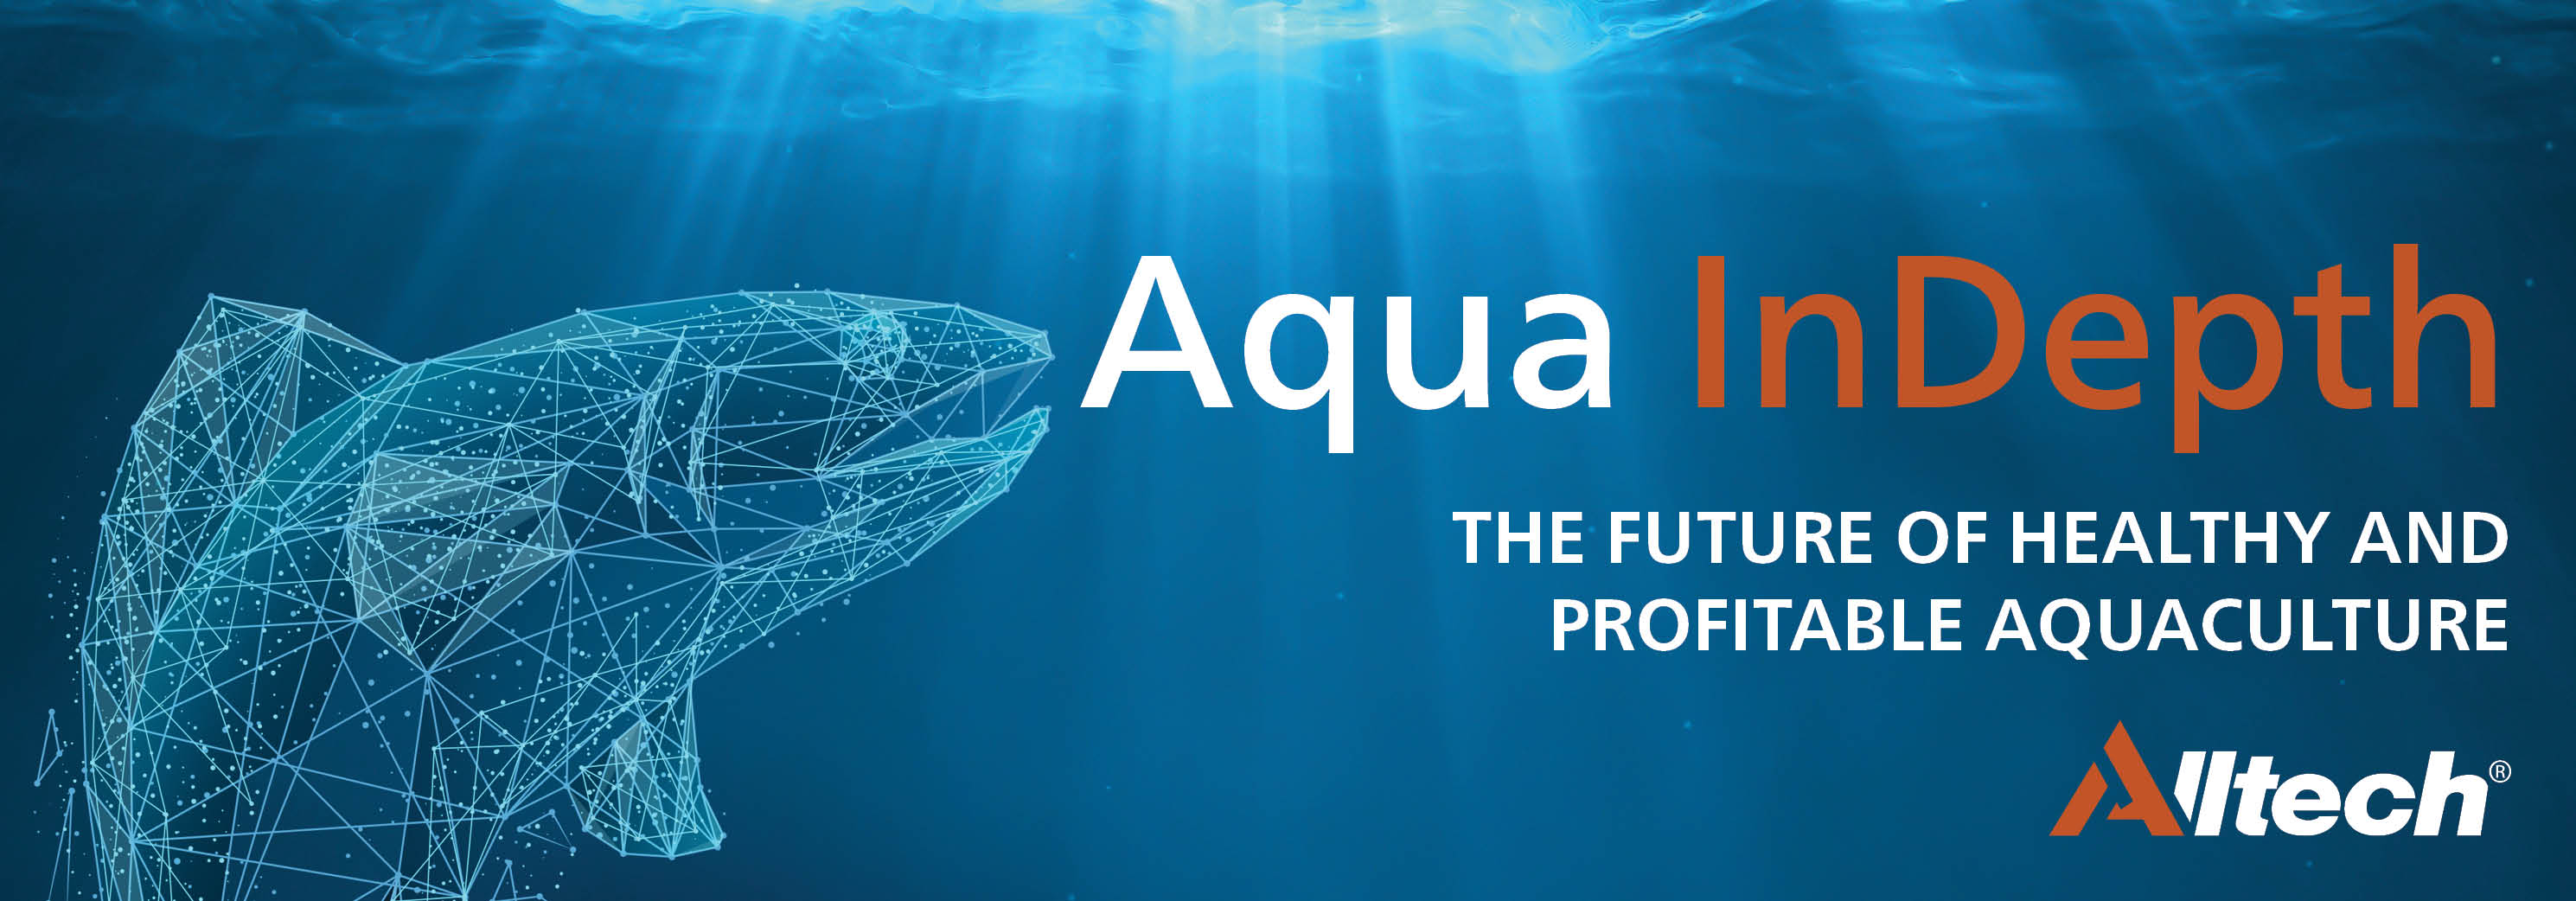 8681_9049_Aqua_Indepth_landing_page_header_update